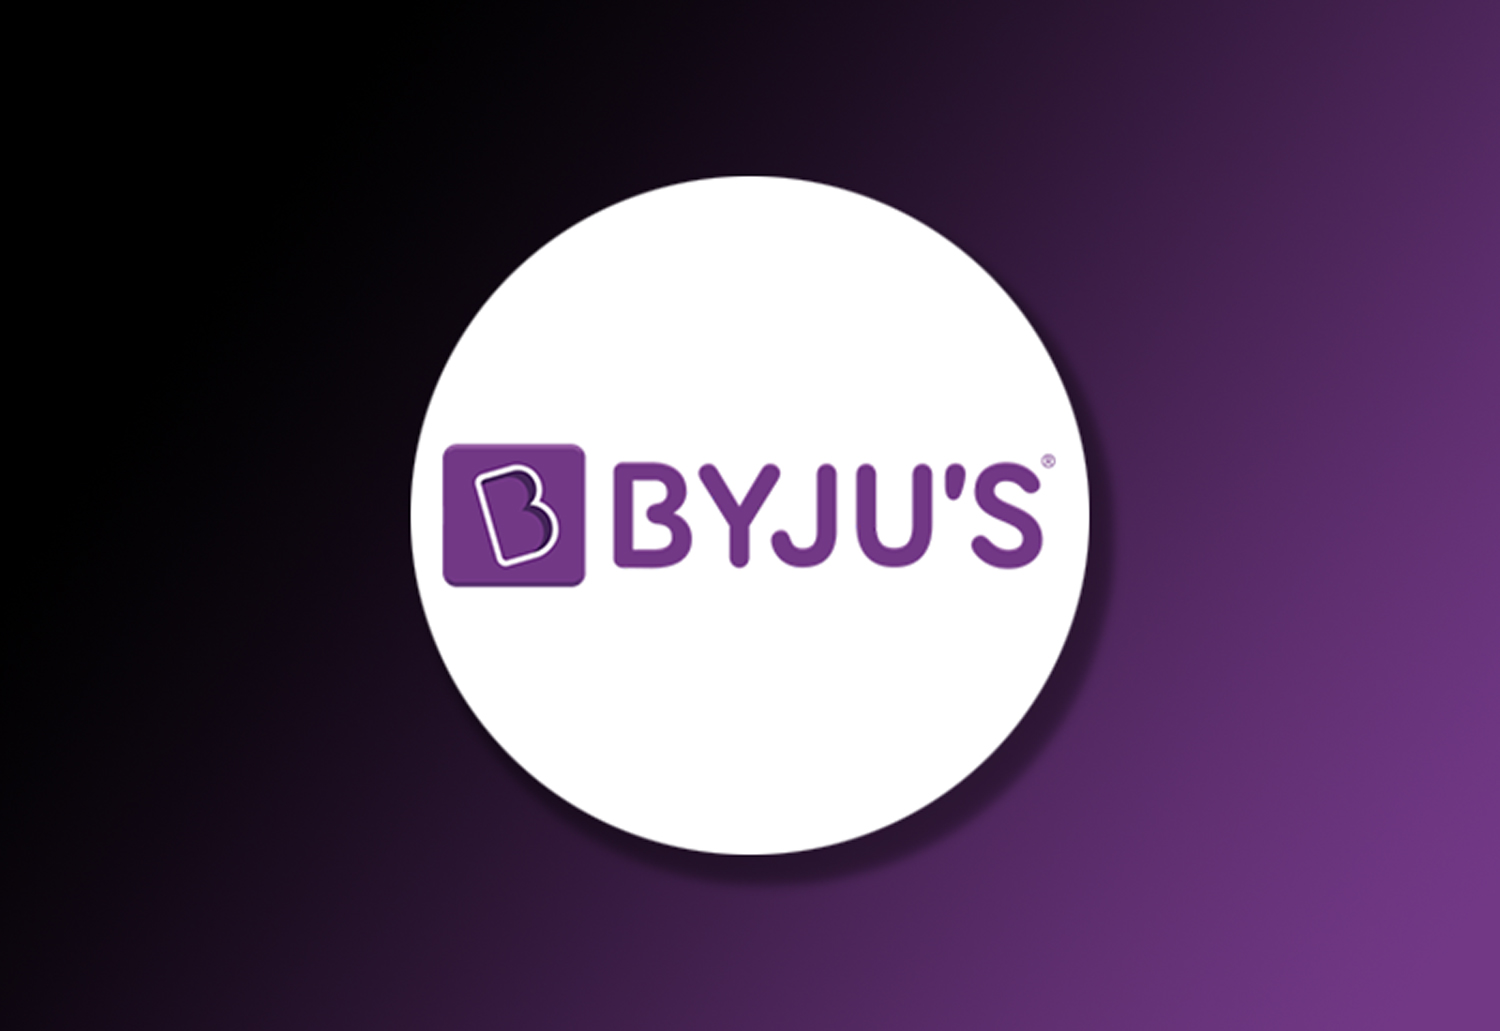 Byju's logo on a Gradient Background